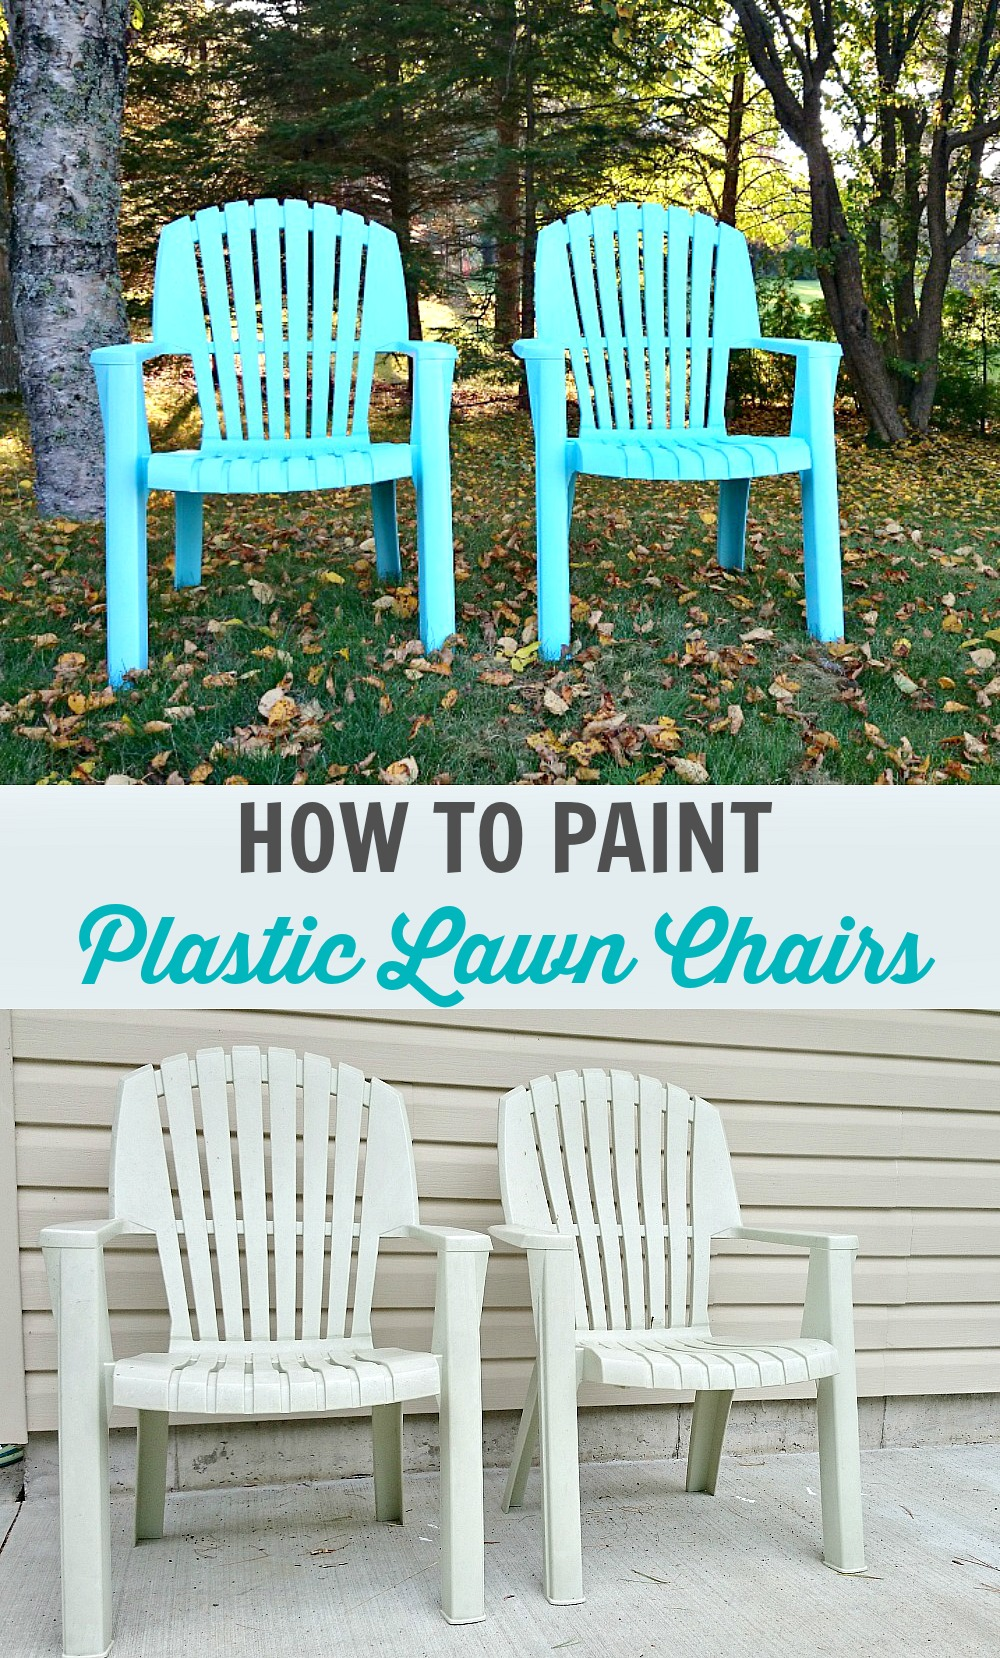 How To Spray Paint Plastic Lawn Chairs By @danslelakehouse